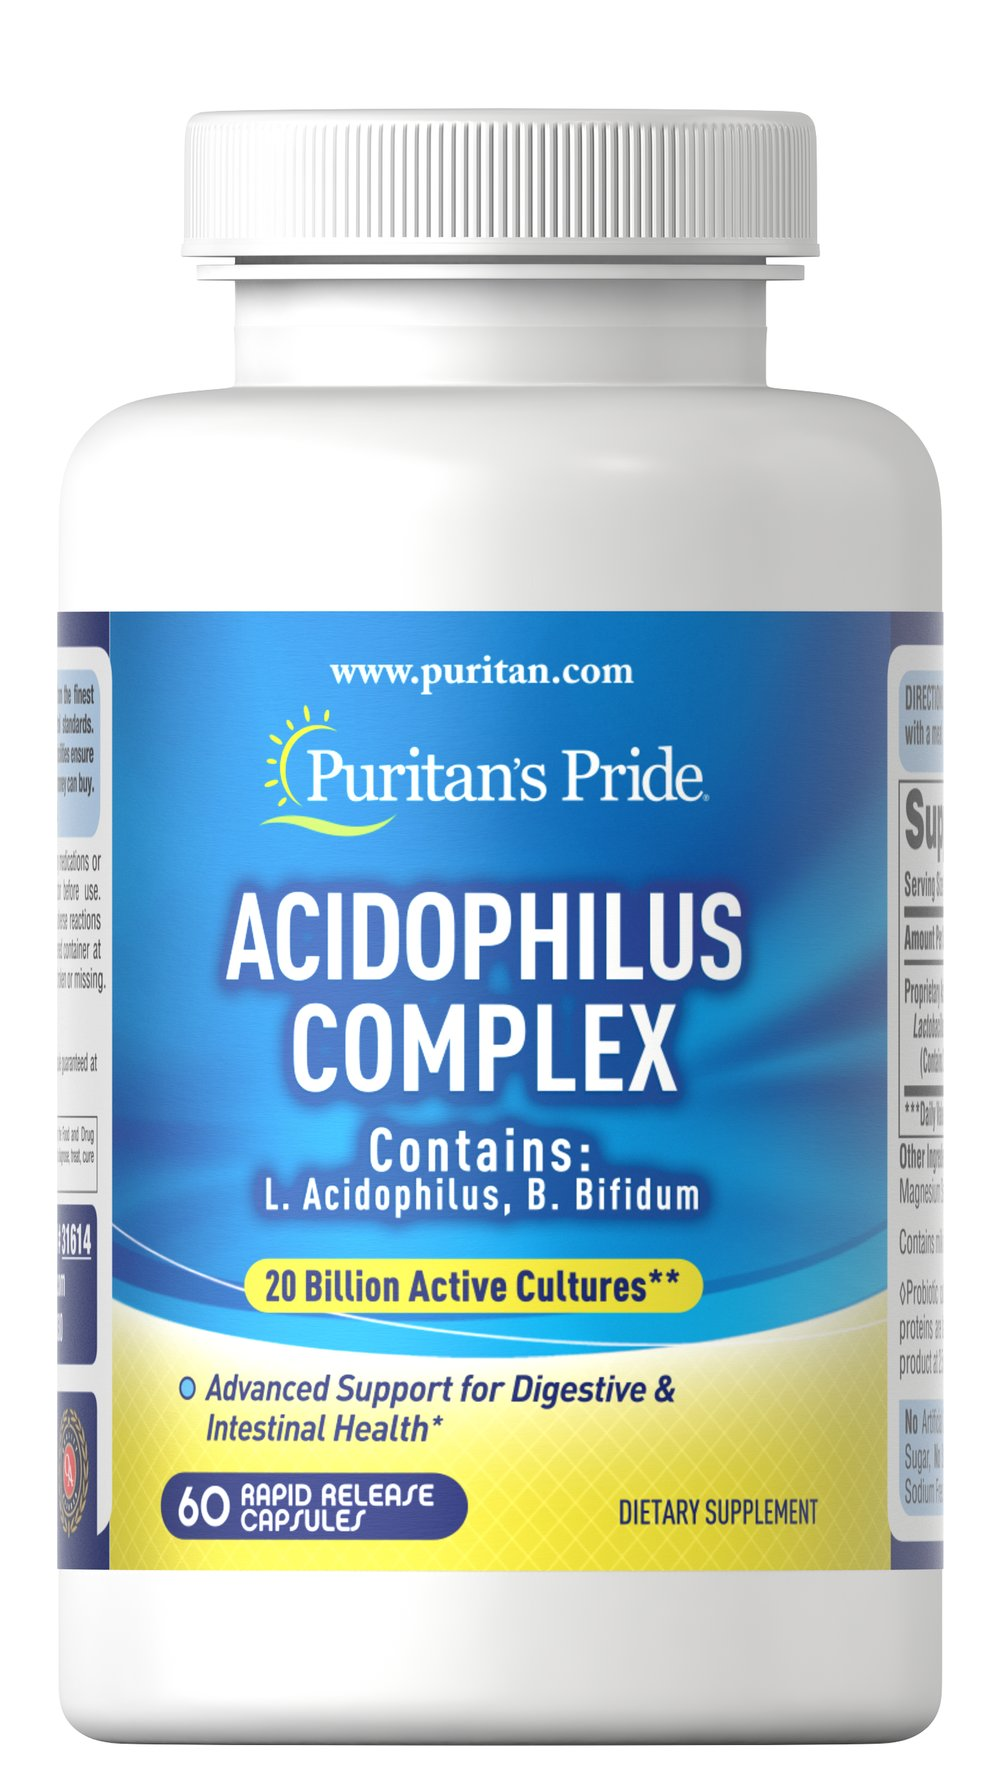 Acidophilus Complex 20 Billion <p>Acidophilus supports a favorable environment for the absorption of nutrients, encourages intestinal microflora balance, and promotes the healthy functioning of the intestinal system.**</p><p>20 billion active cultures per serving guaranteed at time of manufacture. </p> 60 Capsules 20 billion $42.29